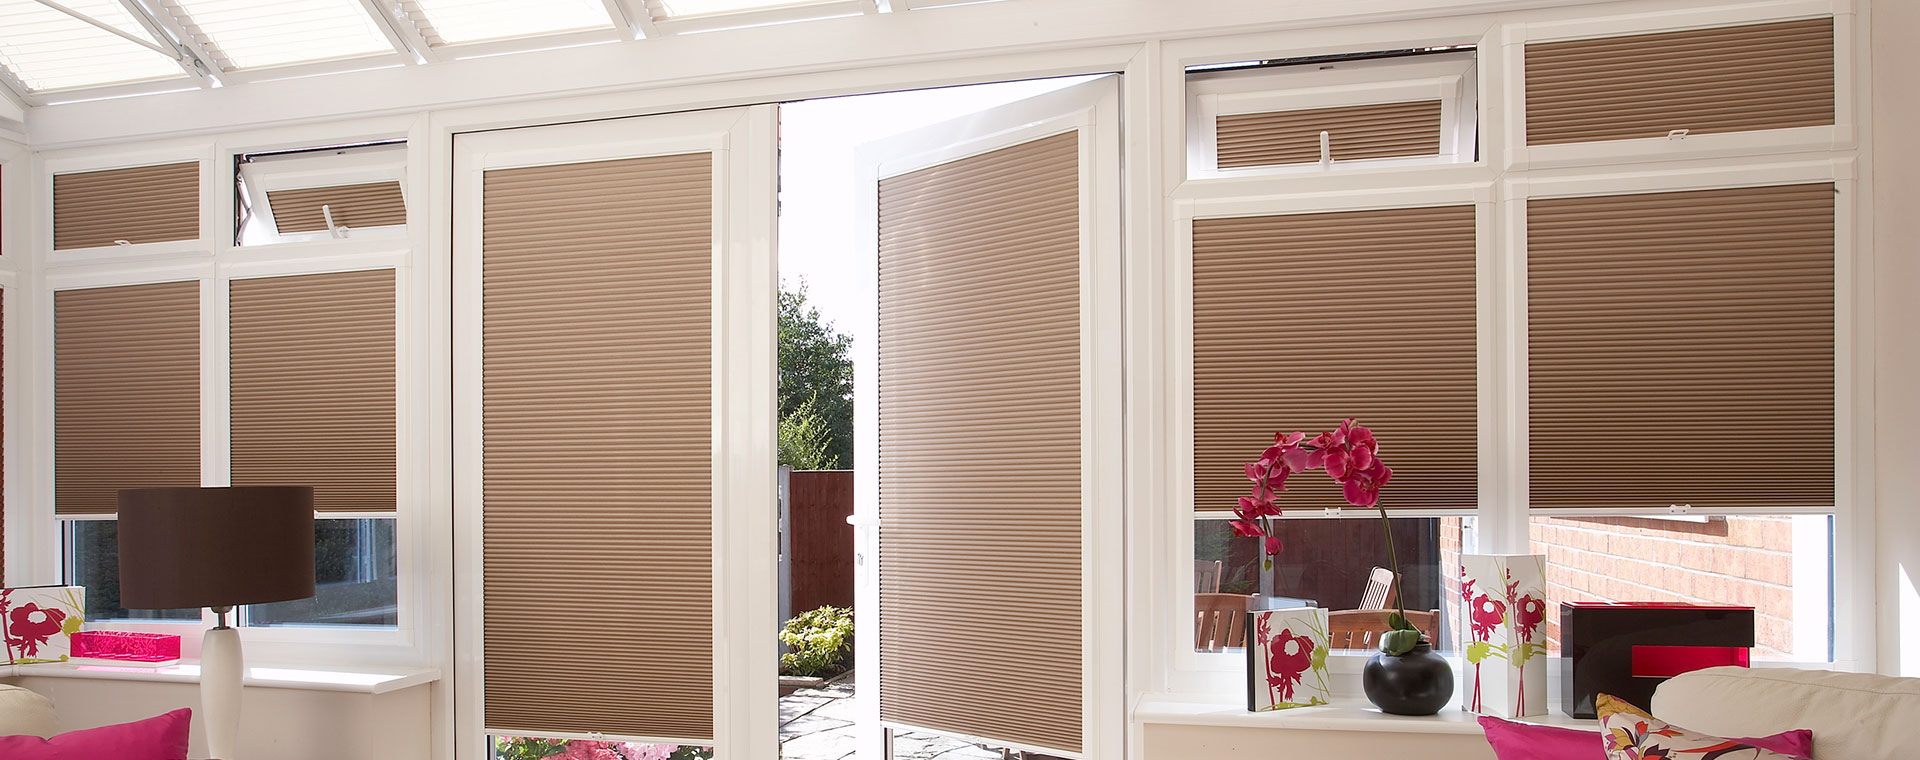 Conservatory Blinds Slide 6